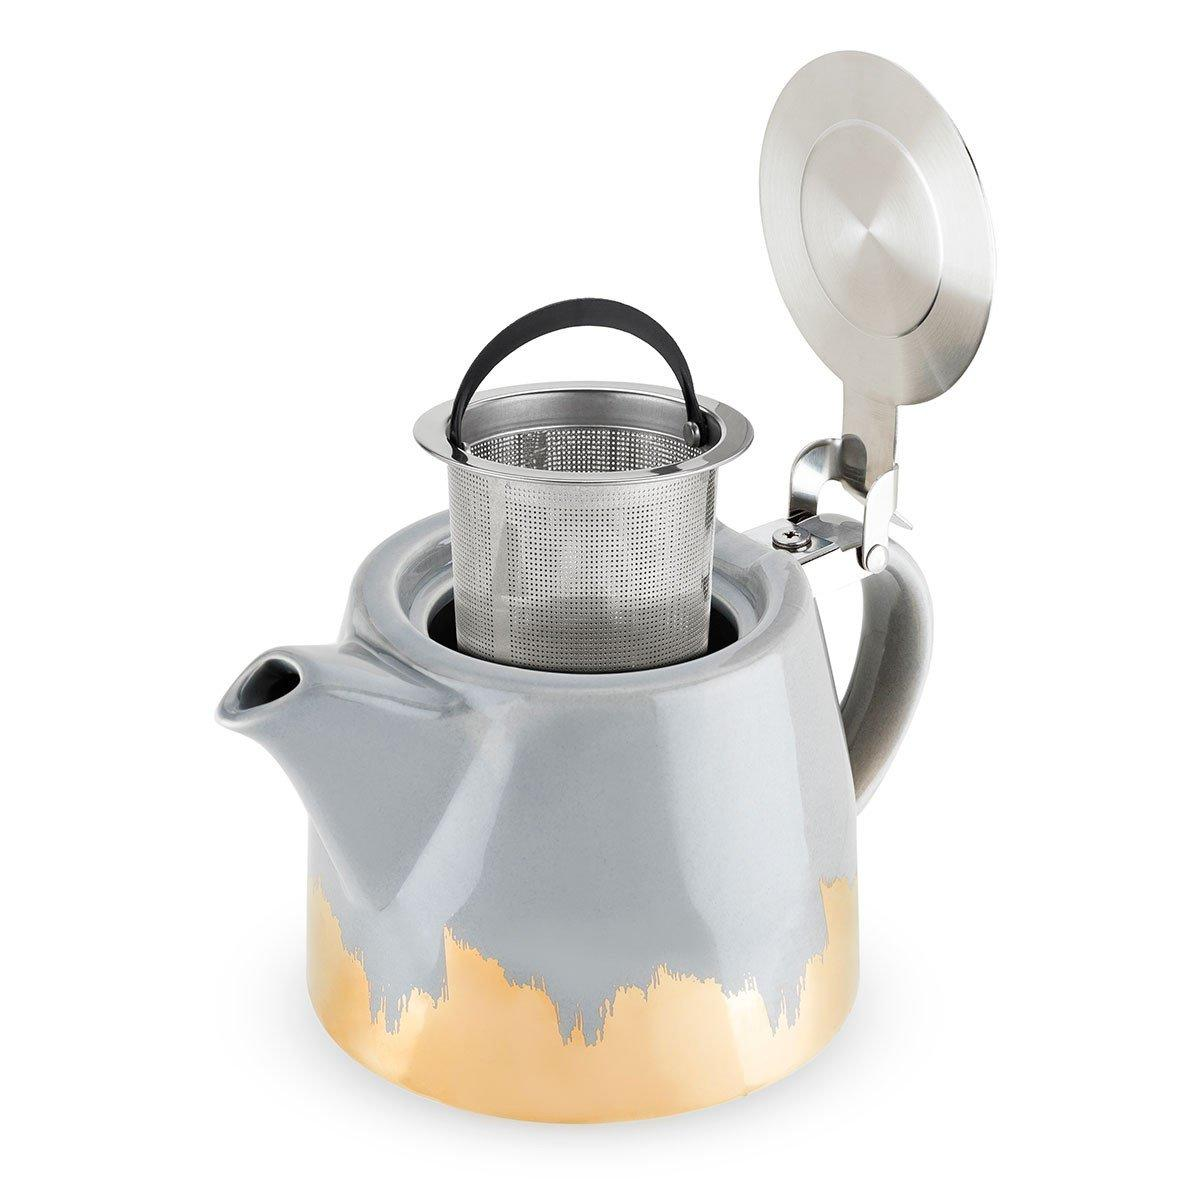 Harper Grey and Gold Brushed Ceramic Teapot and Infuser - Only £26.99